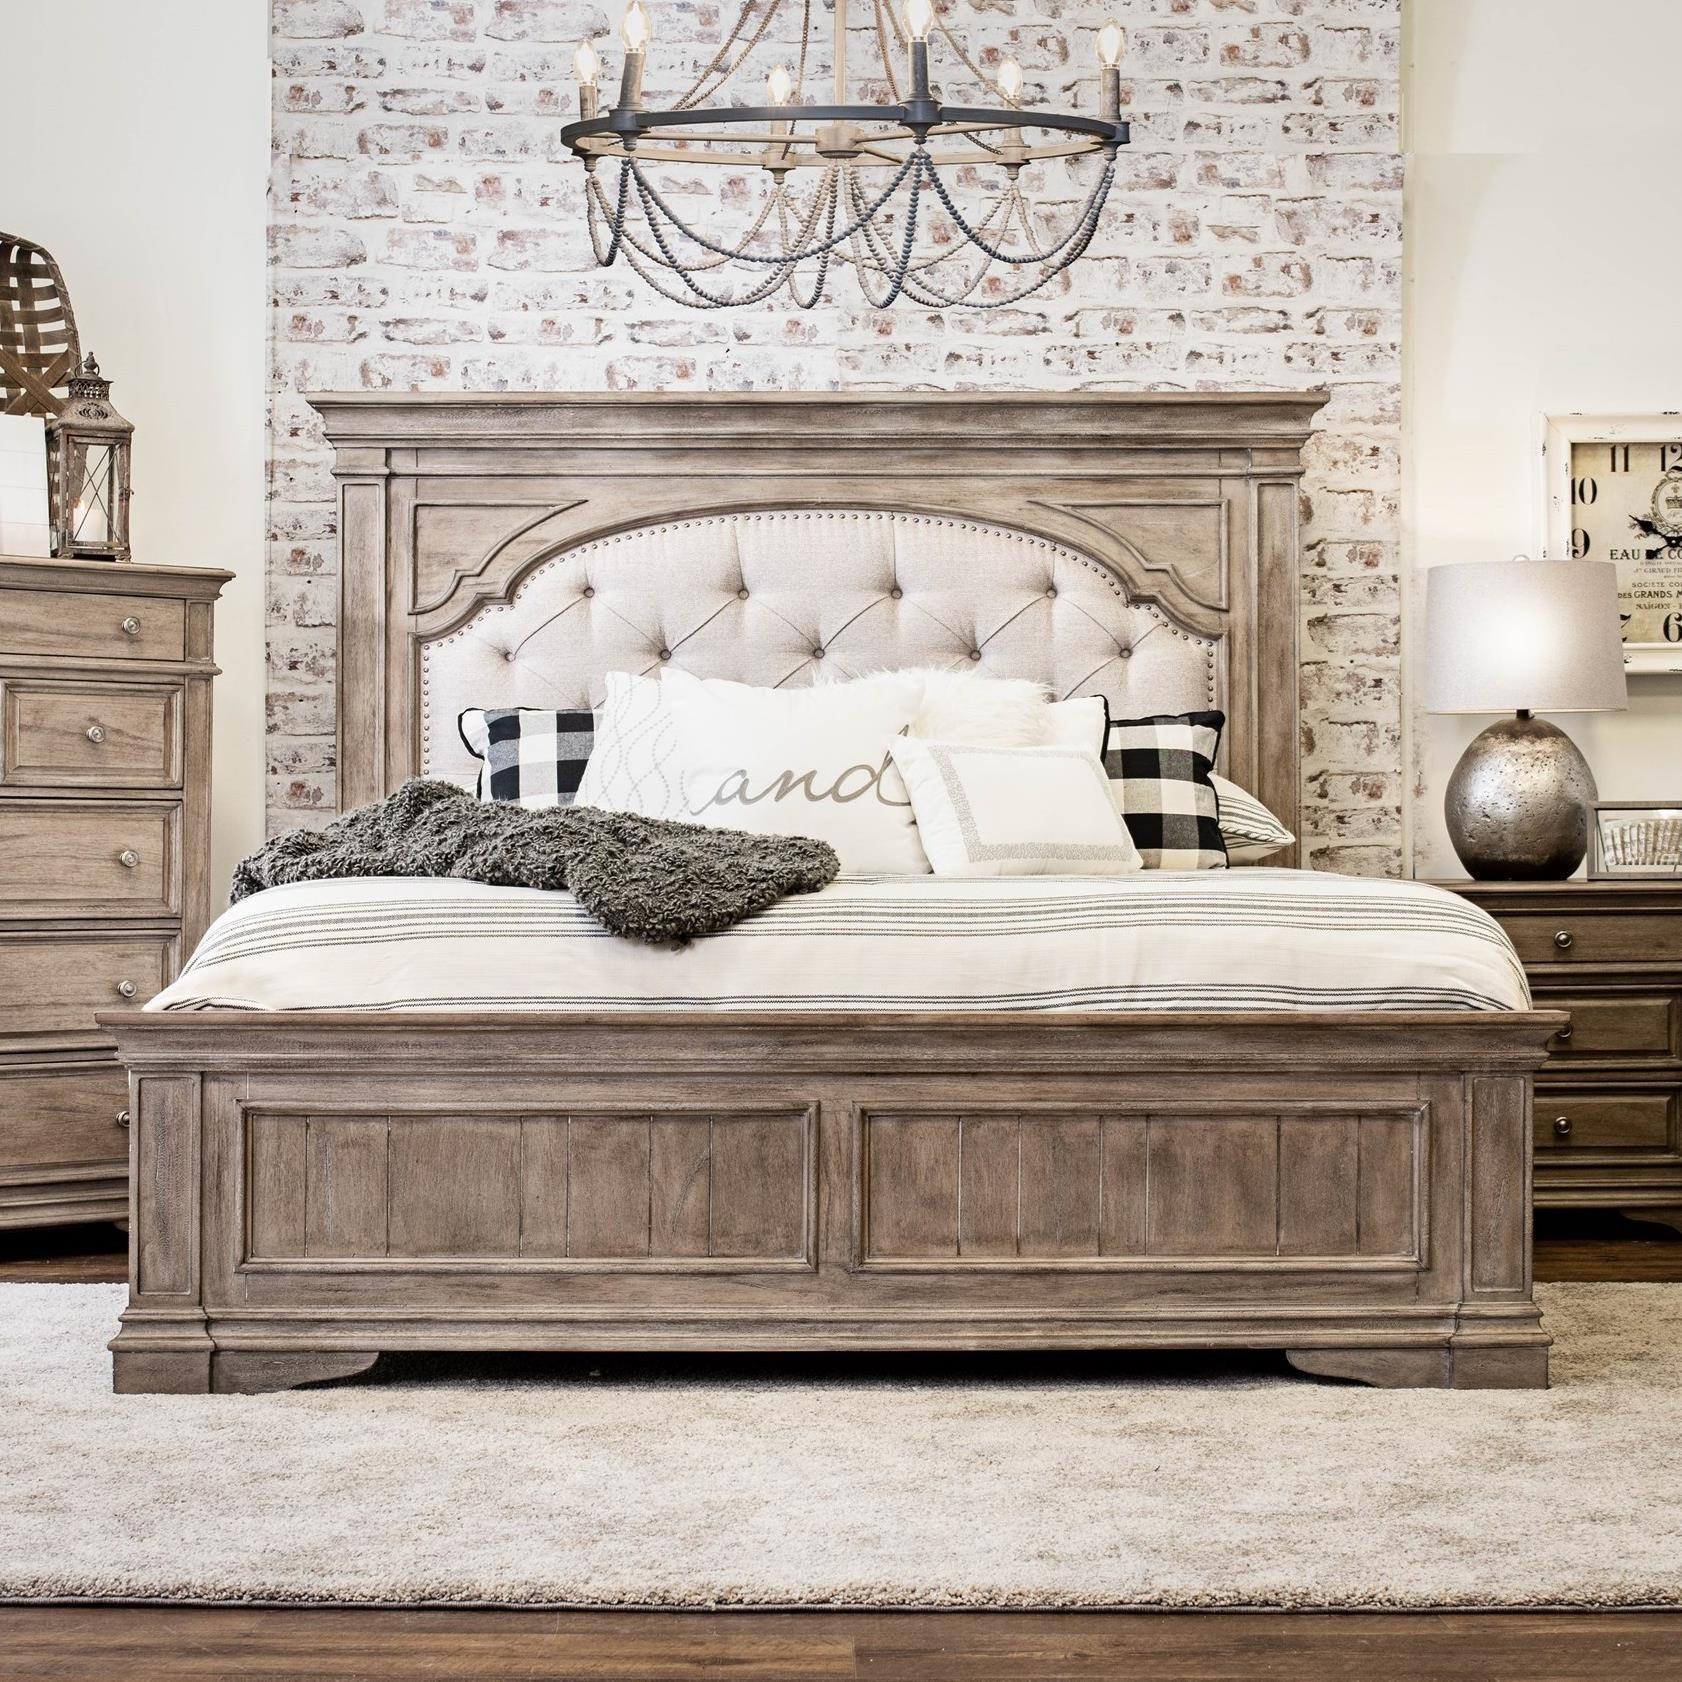 King Bed with Tufted Headboard